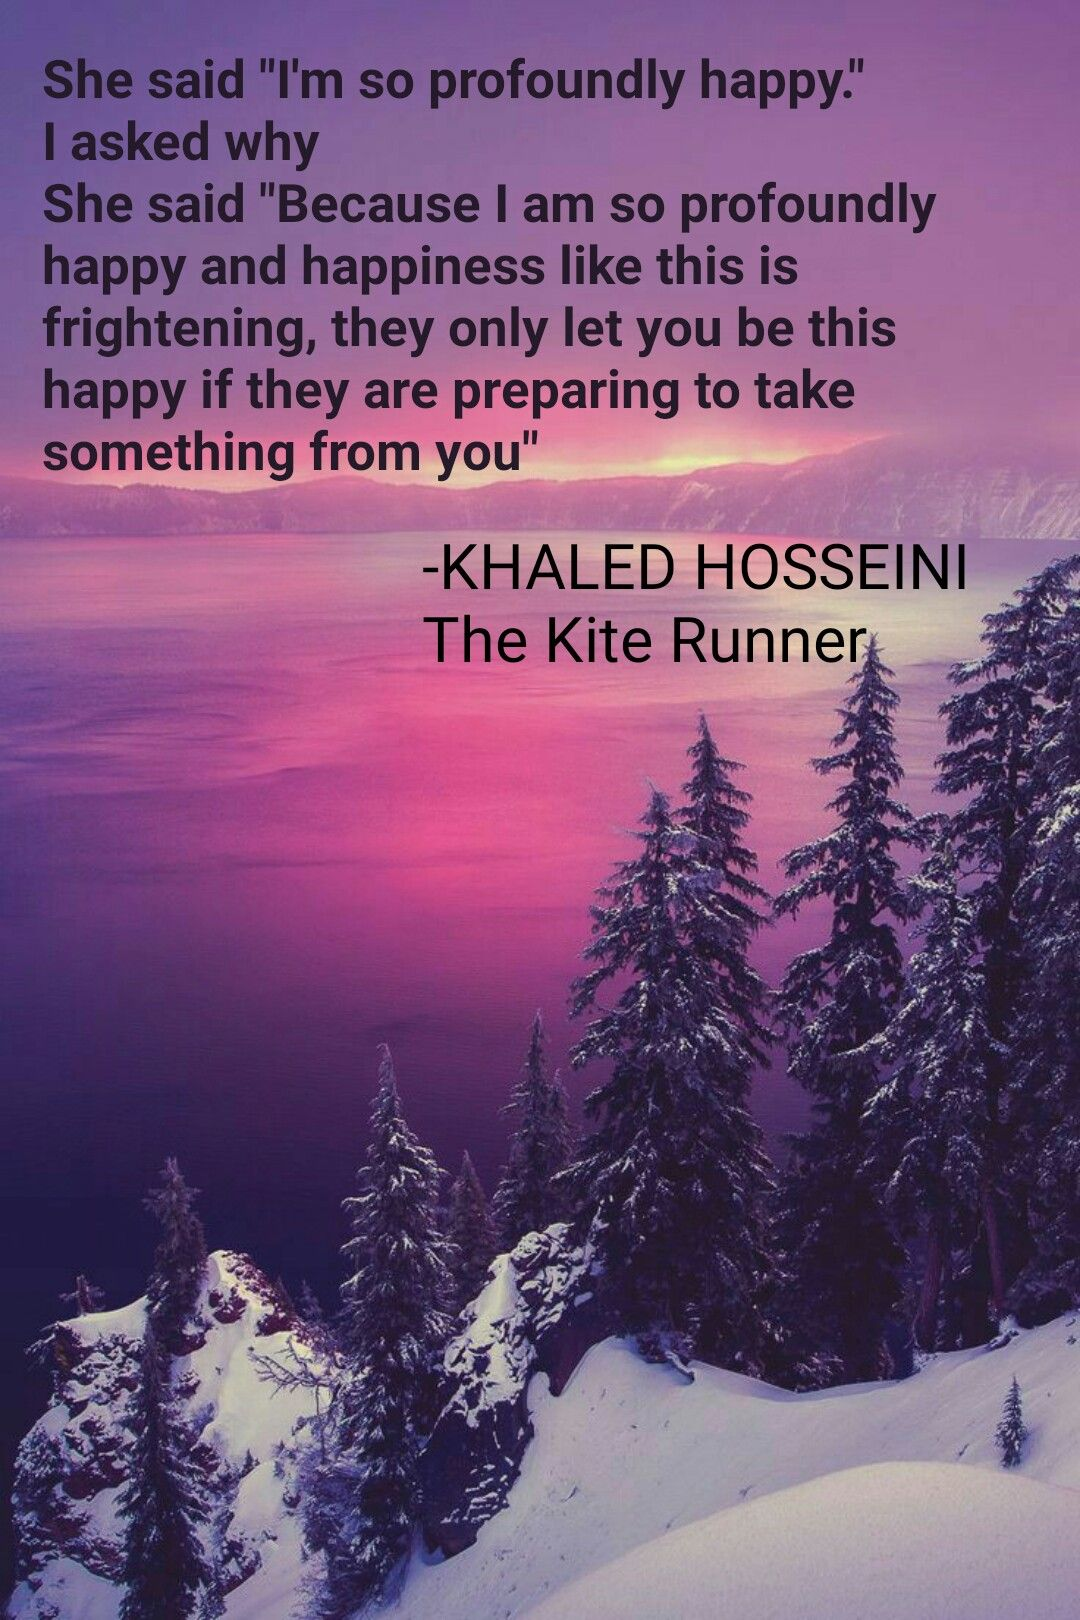 author khaled hosseini the kite runner one of the best quotes from  author khaled hosseini the kite runner one of the best quotes from one of the best